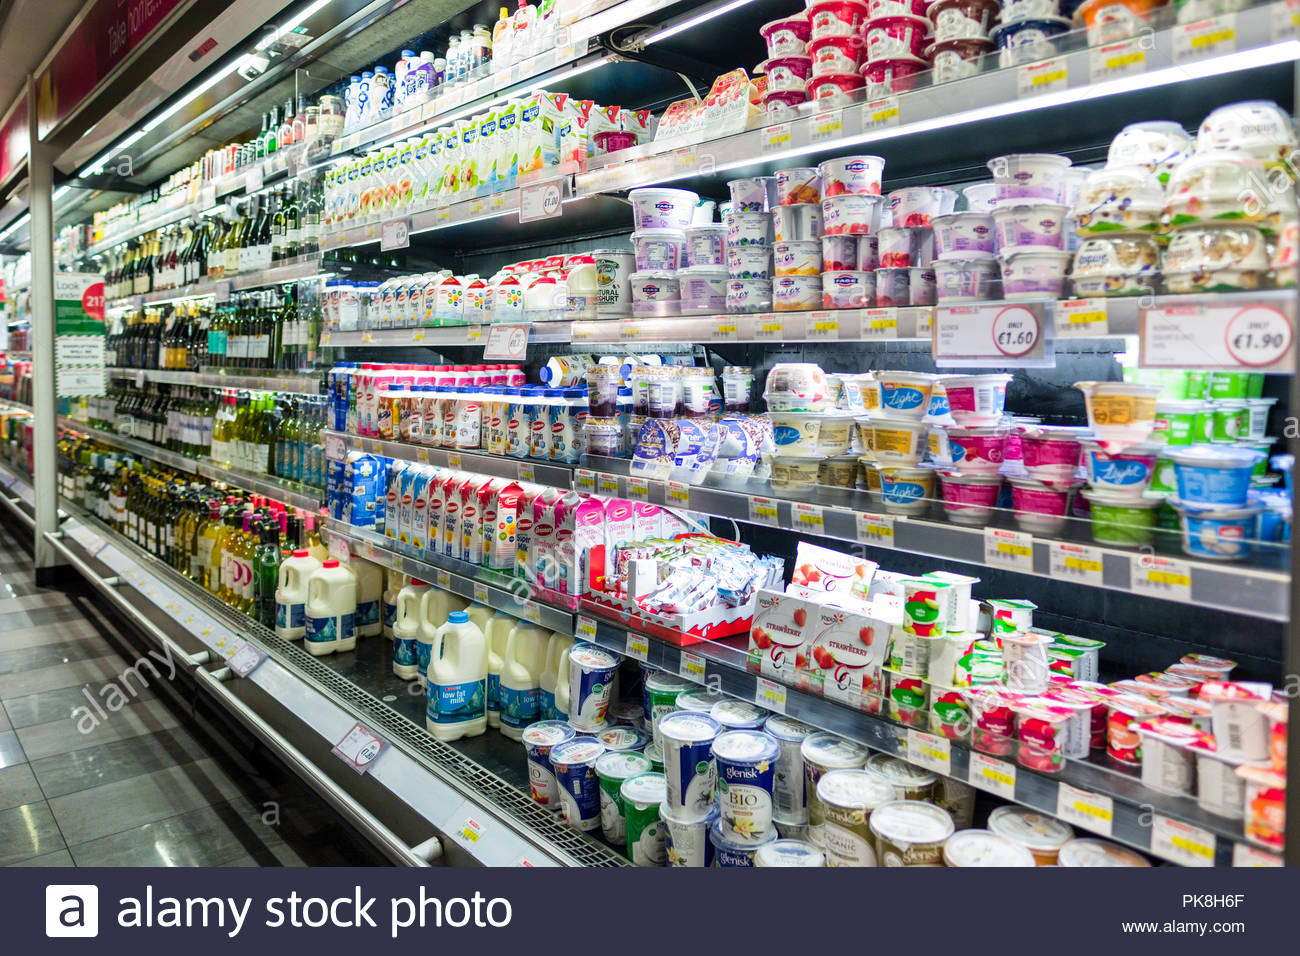 Large selection of yogurt and dairy products in refrigerated display case, Spar convenience retail shop, Merrion Row, Dublin, Leinster, Ireland - Stock Image